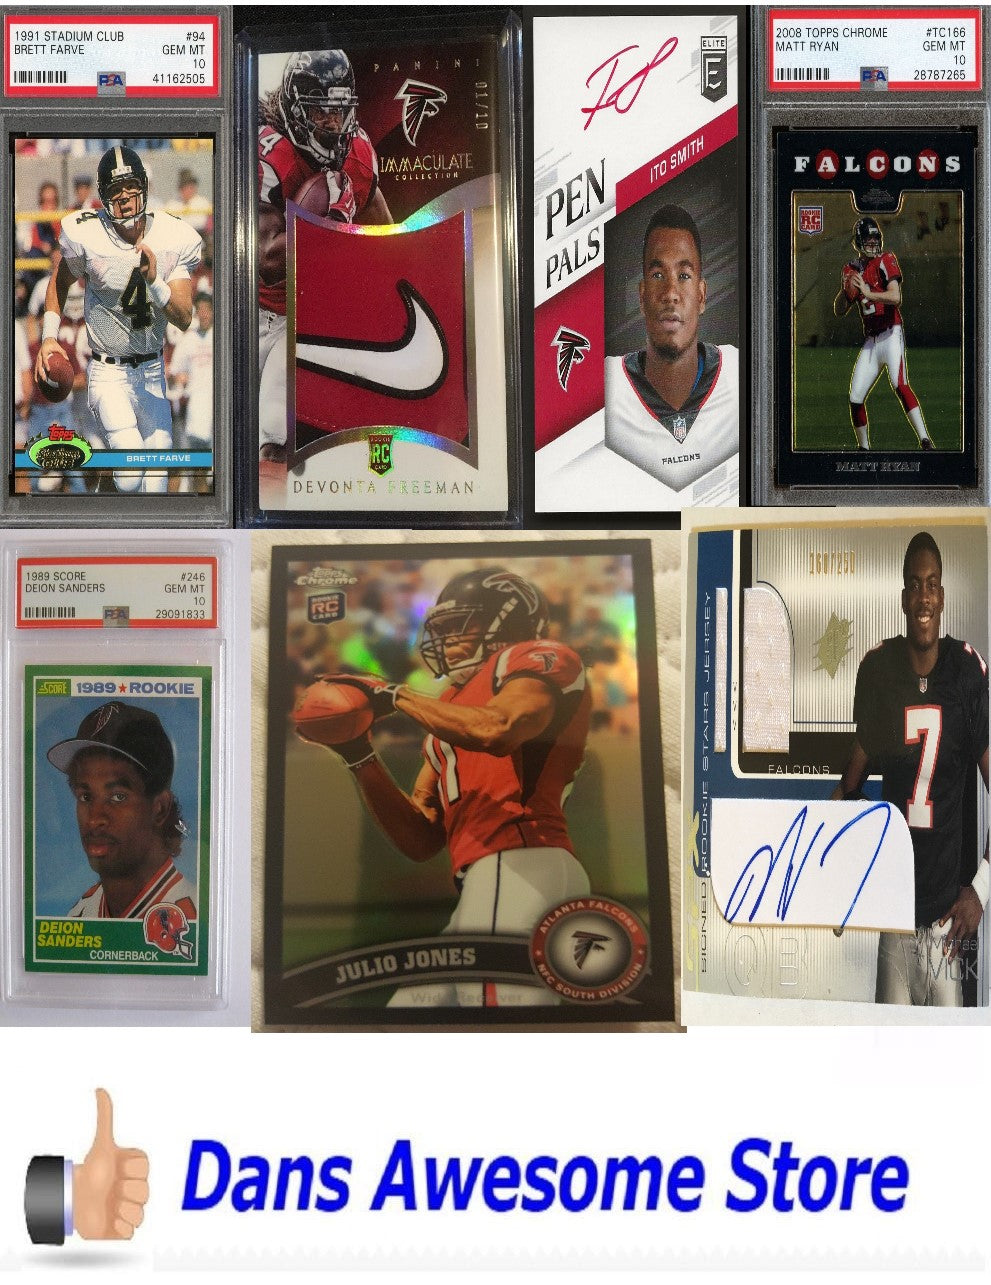 Atlanta Falcons Rookie Card - Dans Awesome Store